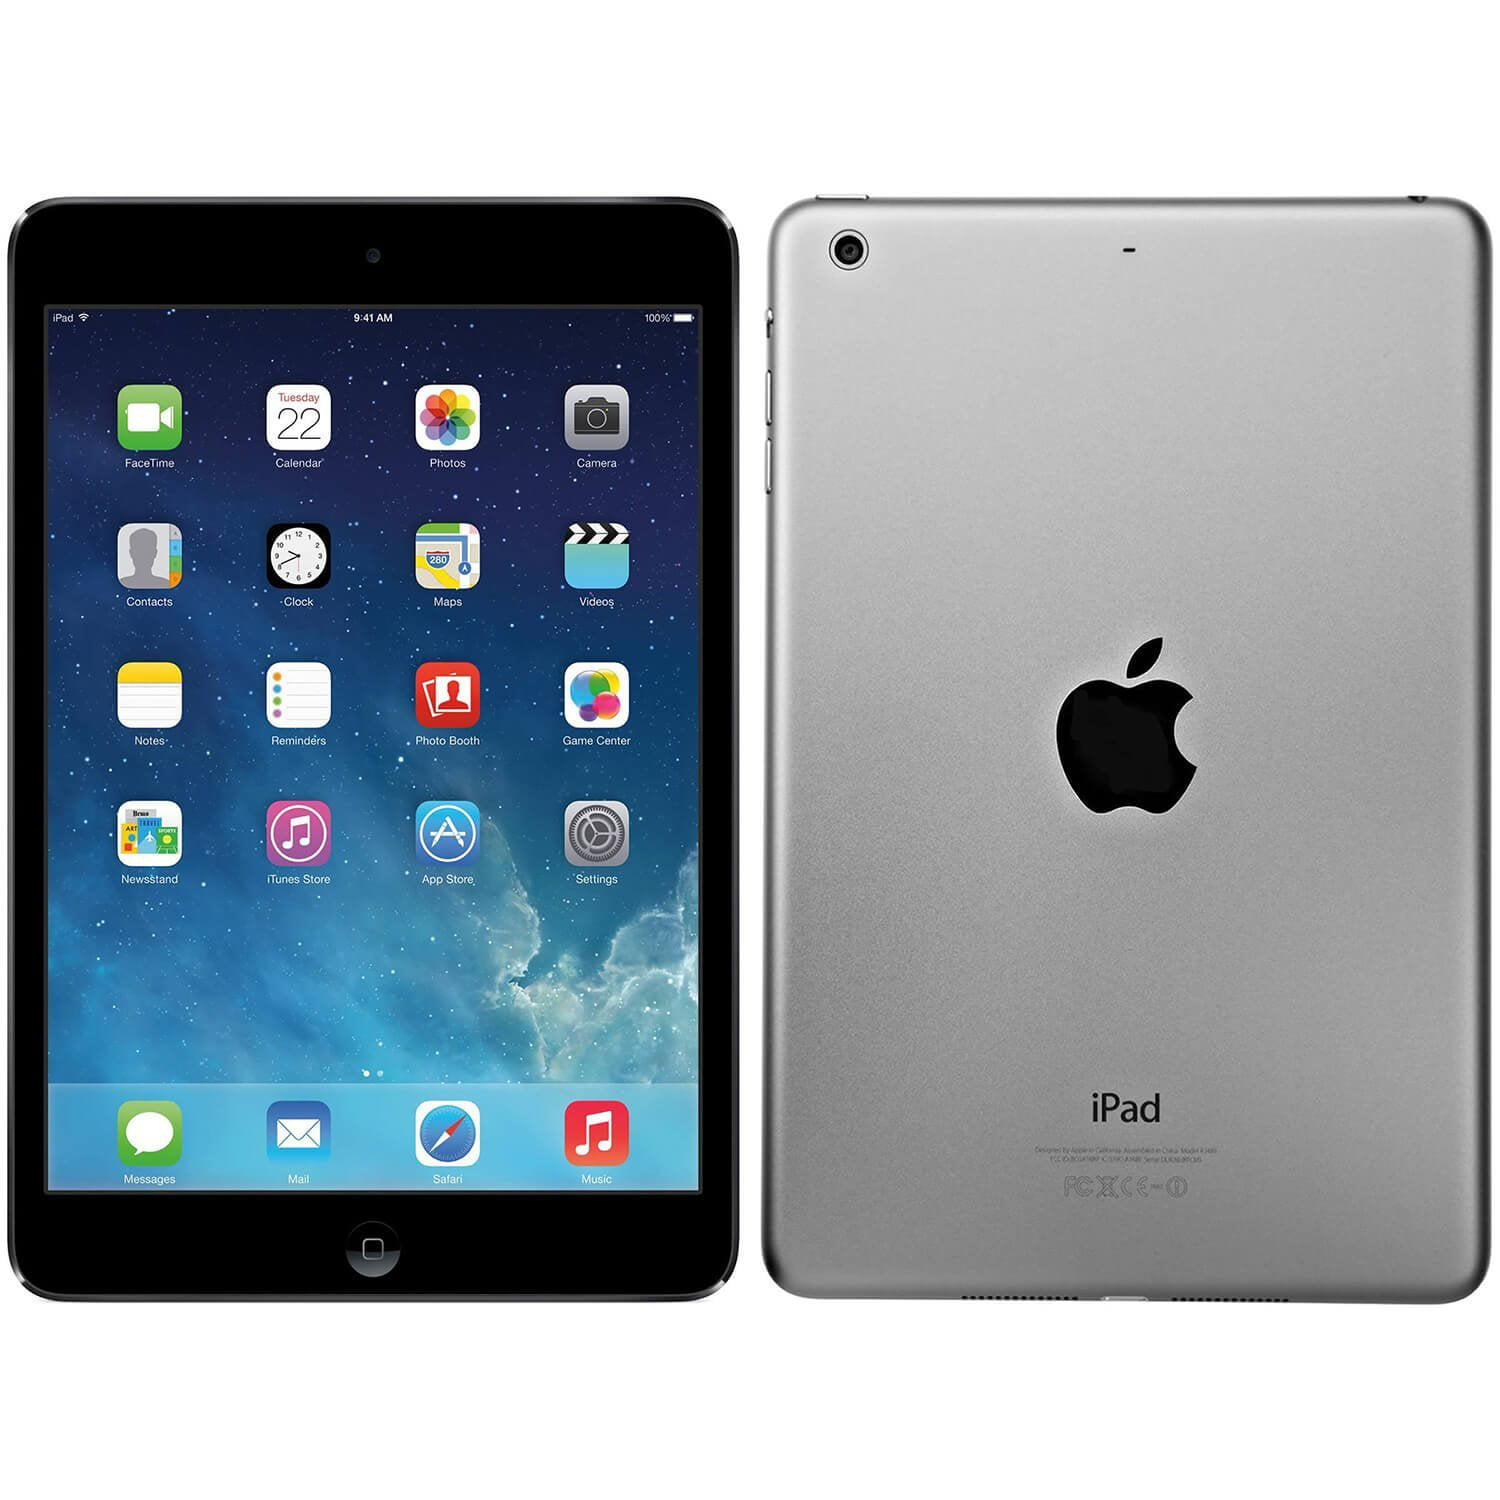 Apple® iPad Air 16GB Wi-Fi - Space Gray